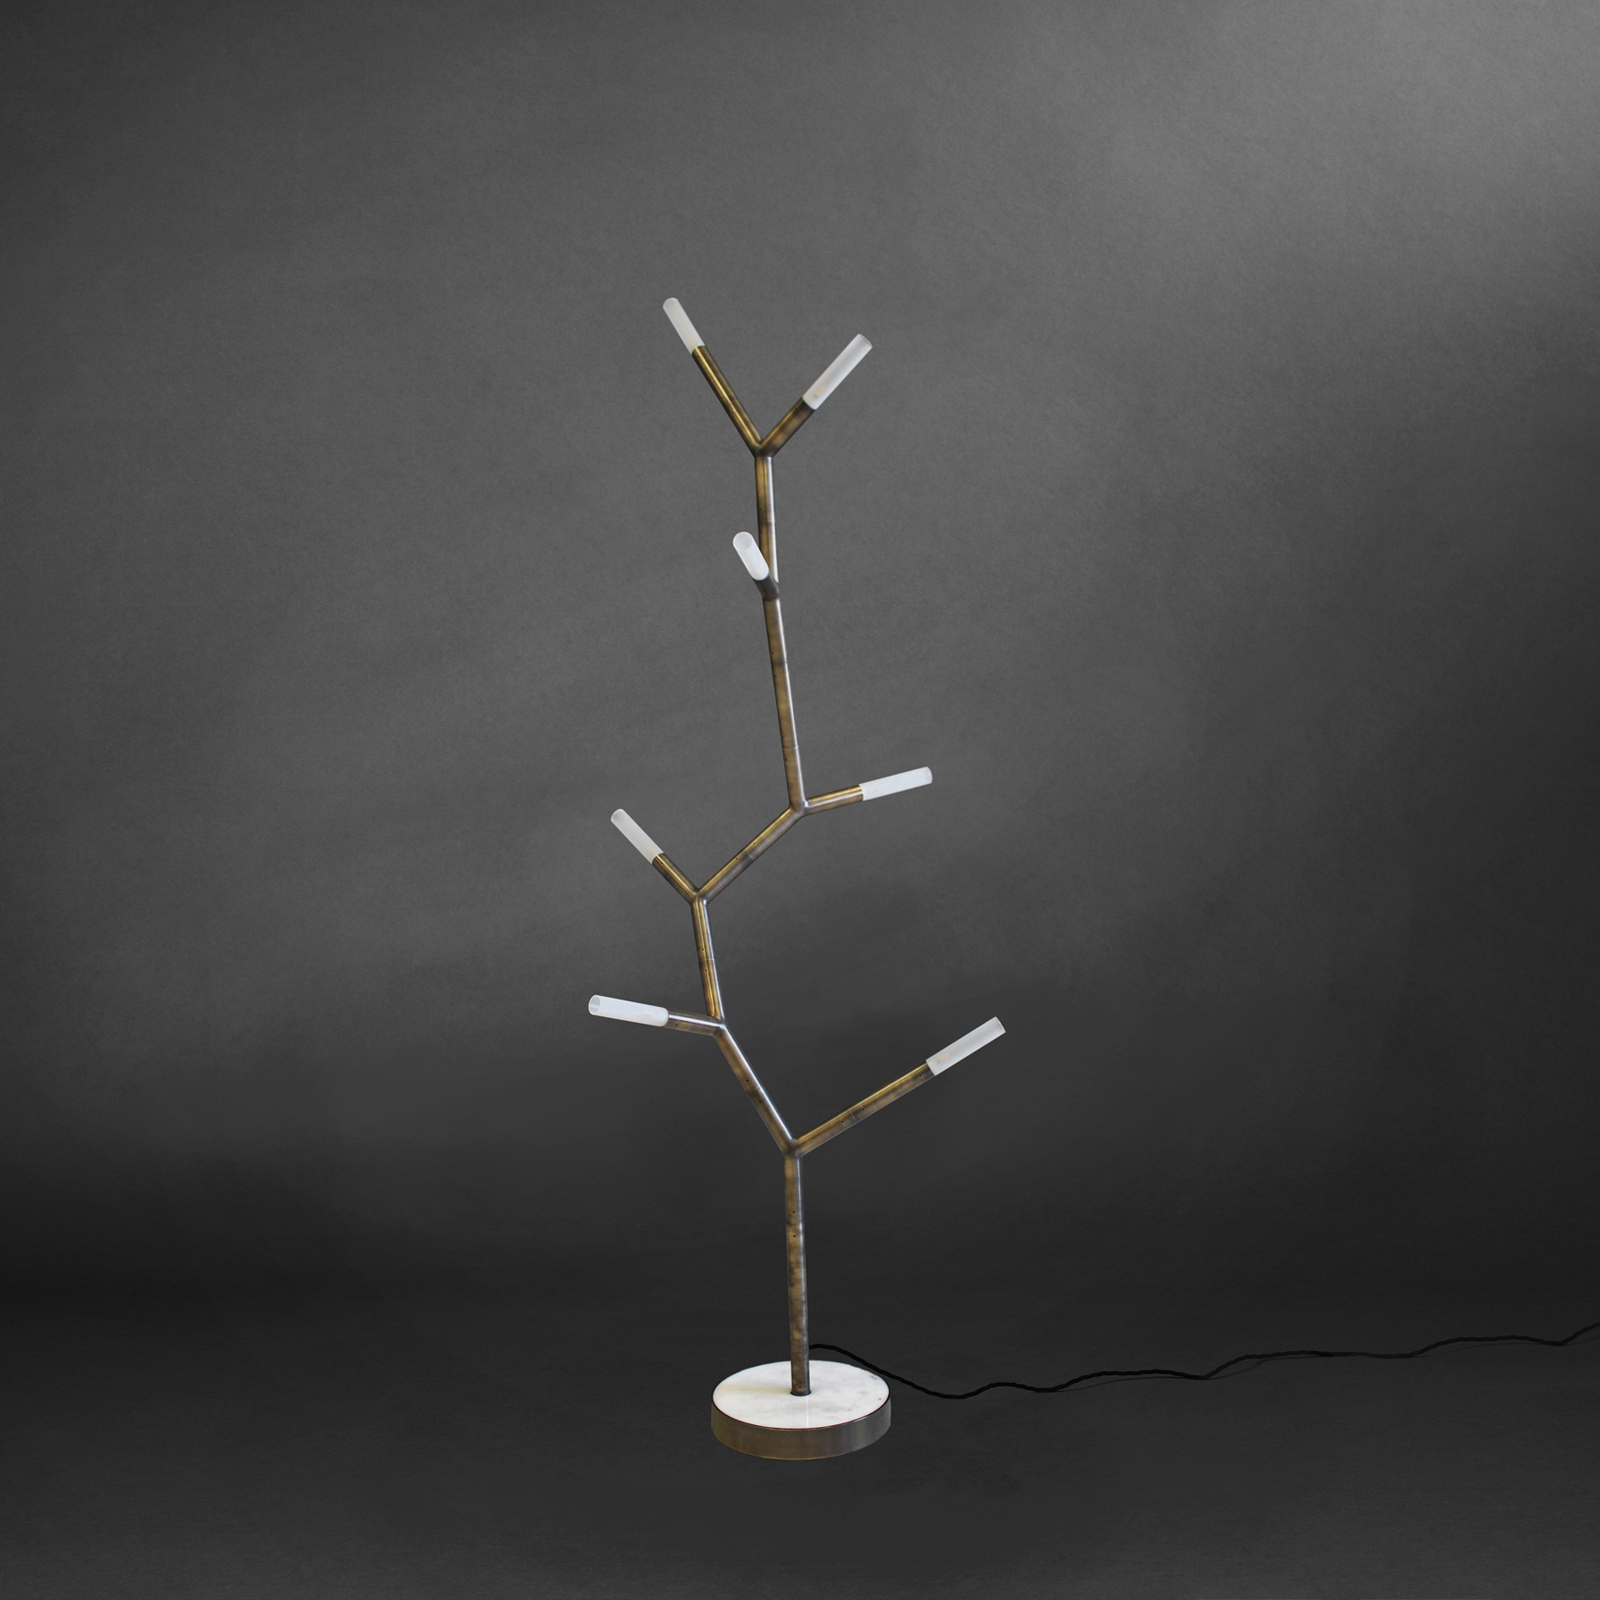 7 Arm Branch Chain Amino Acid Floor Lamp By Christopher Boots In Aged Brass And Marble 2018 Australia 01